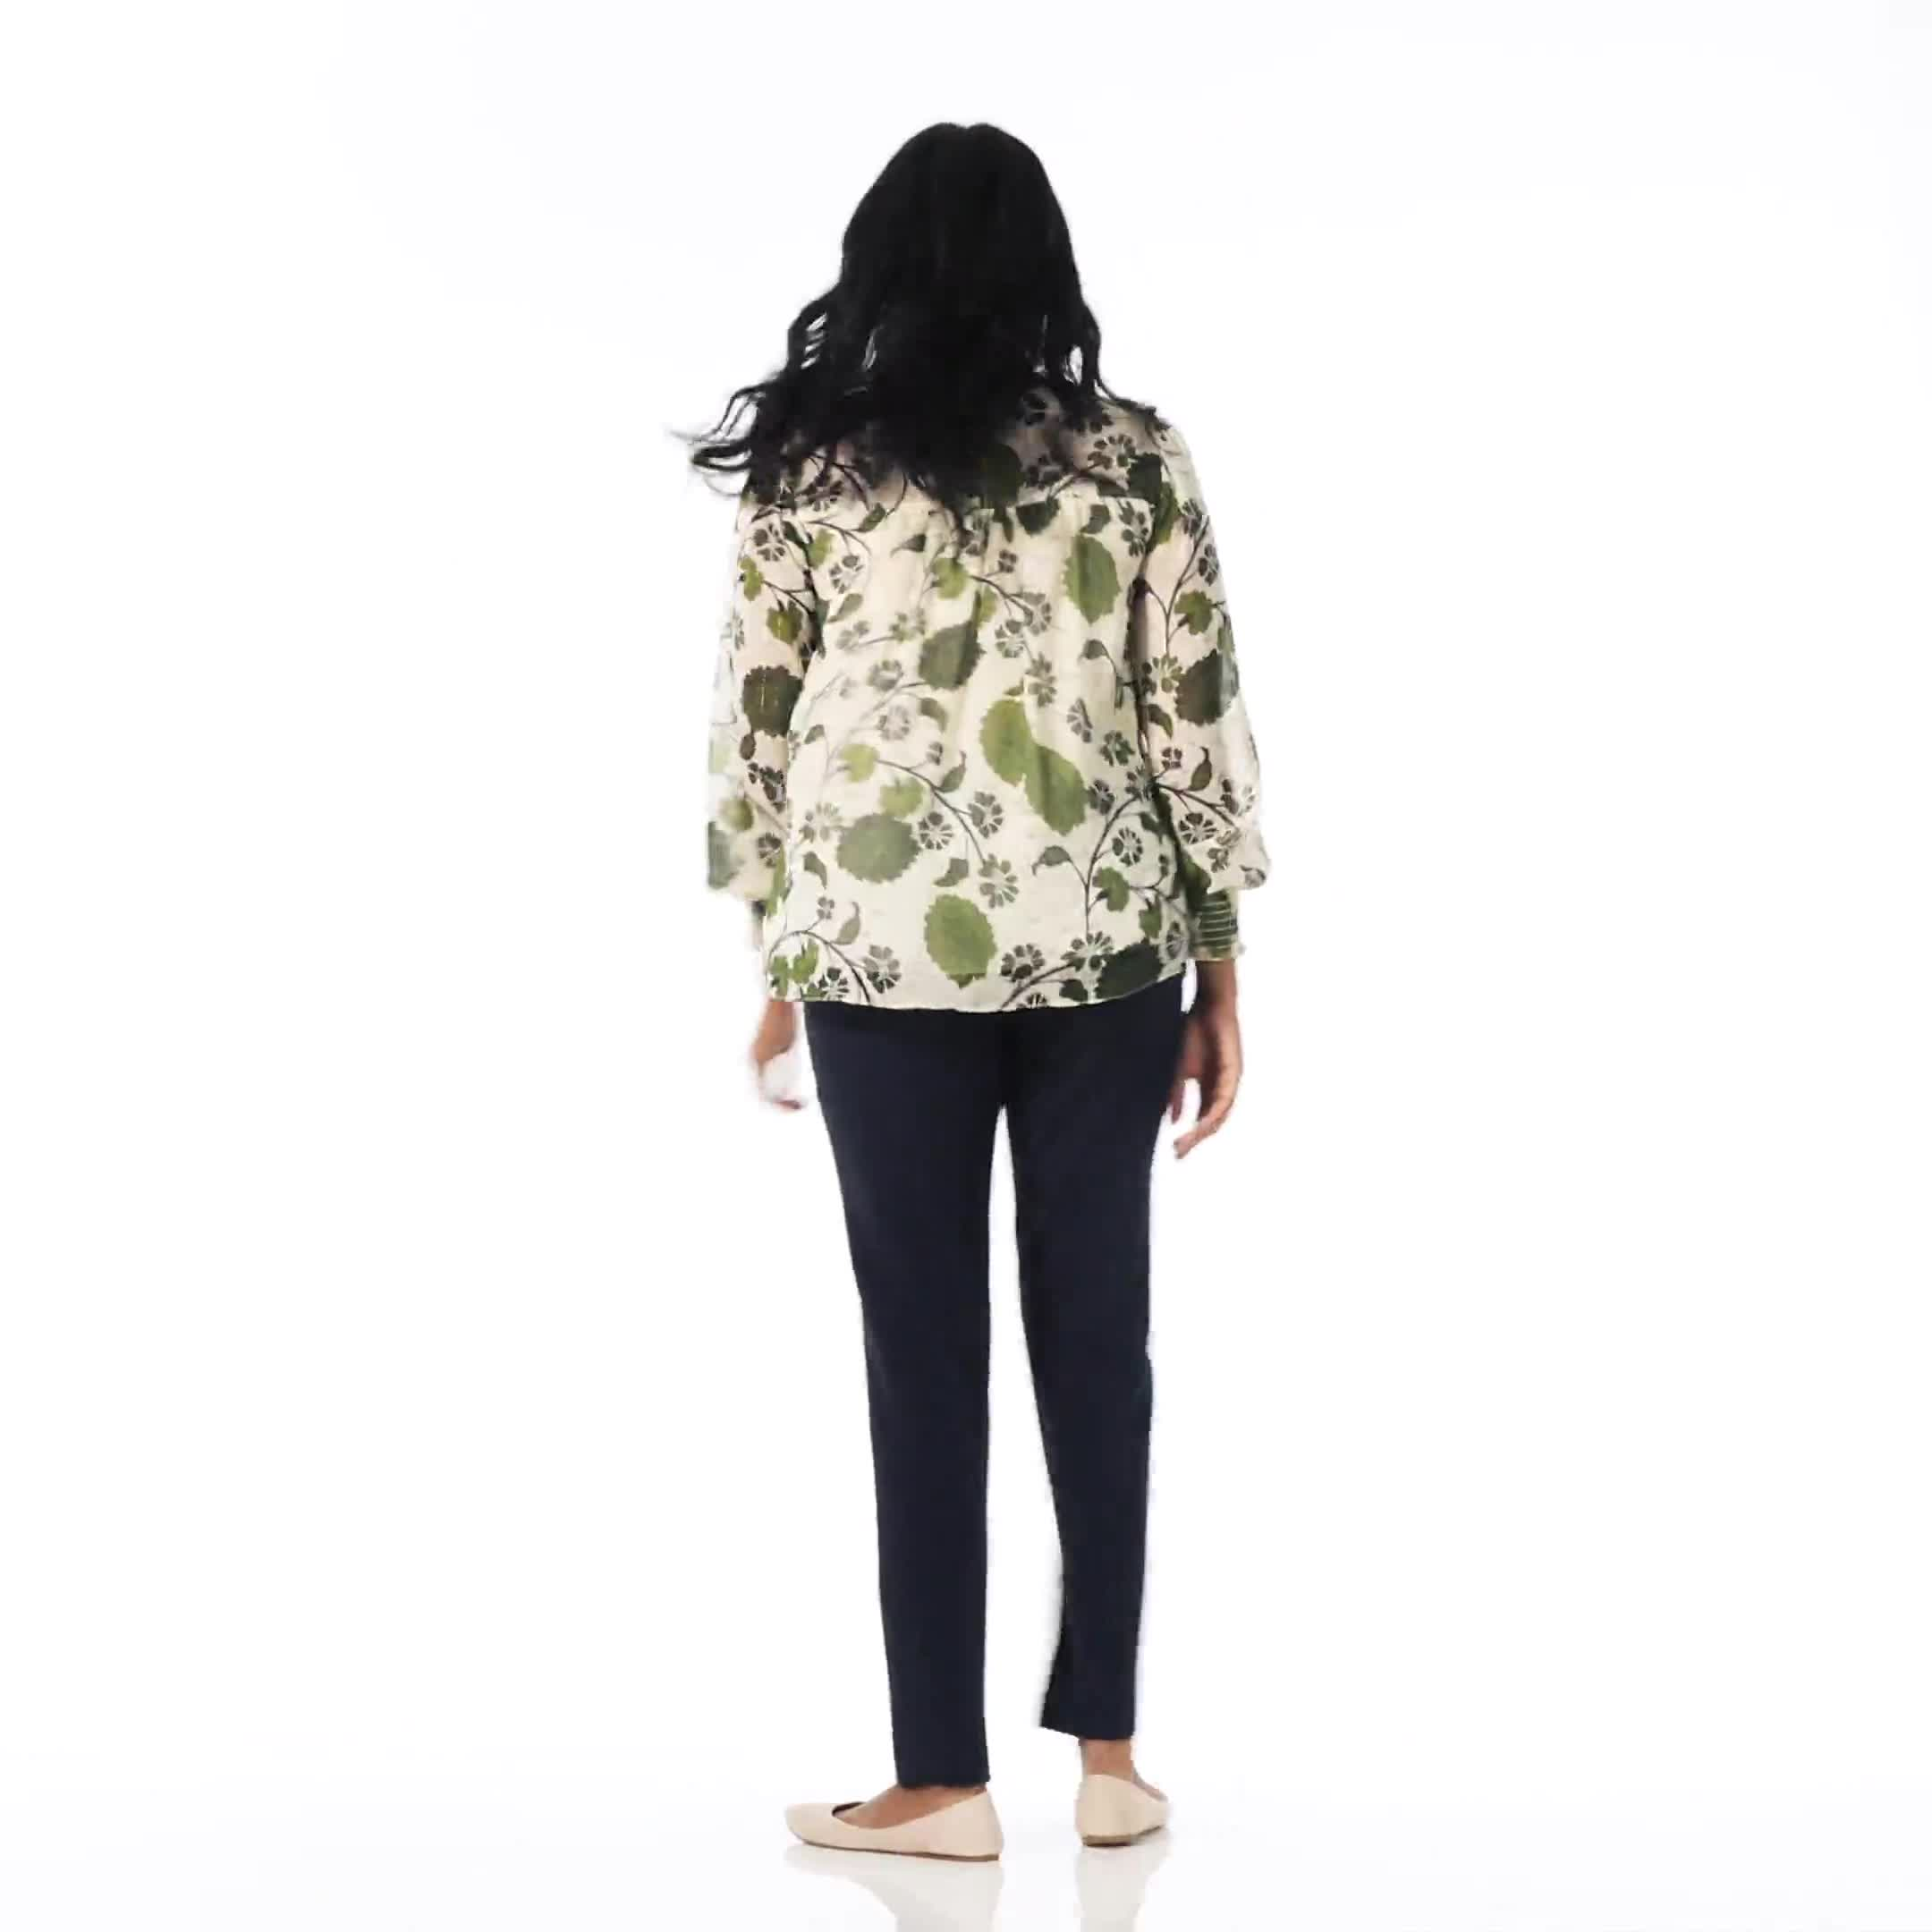 Floral Printed Blouse With Lurex - Video